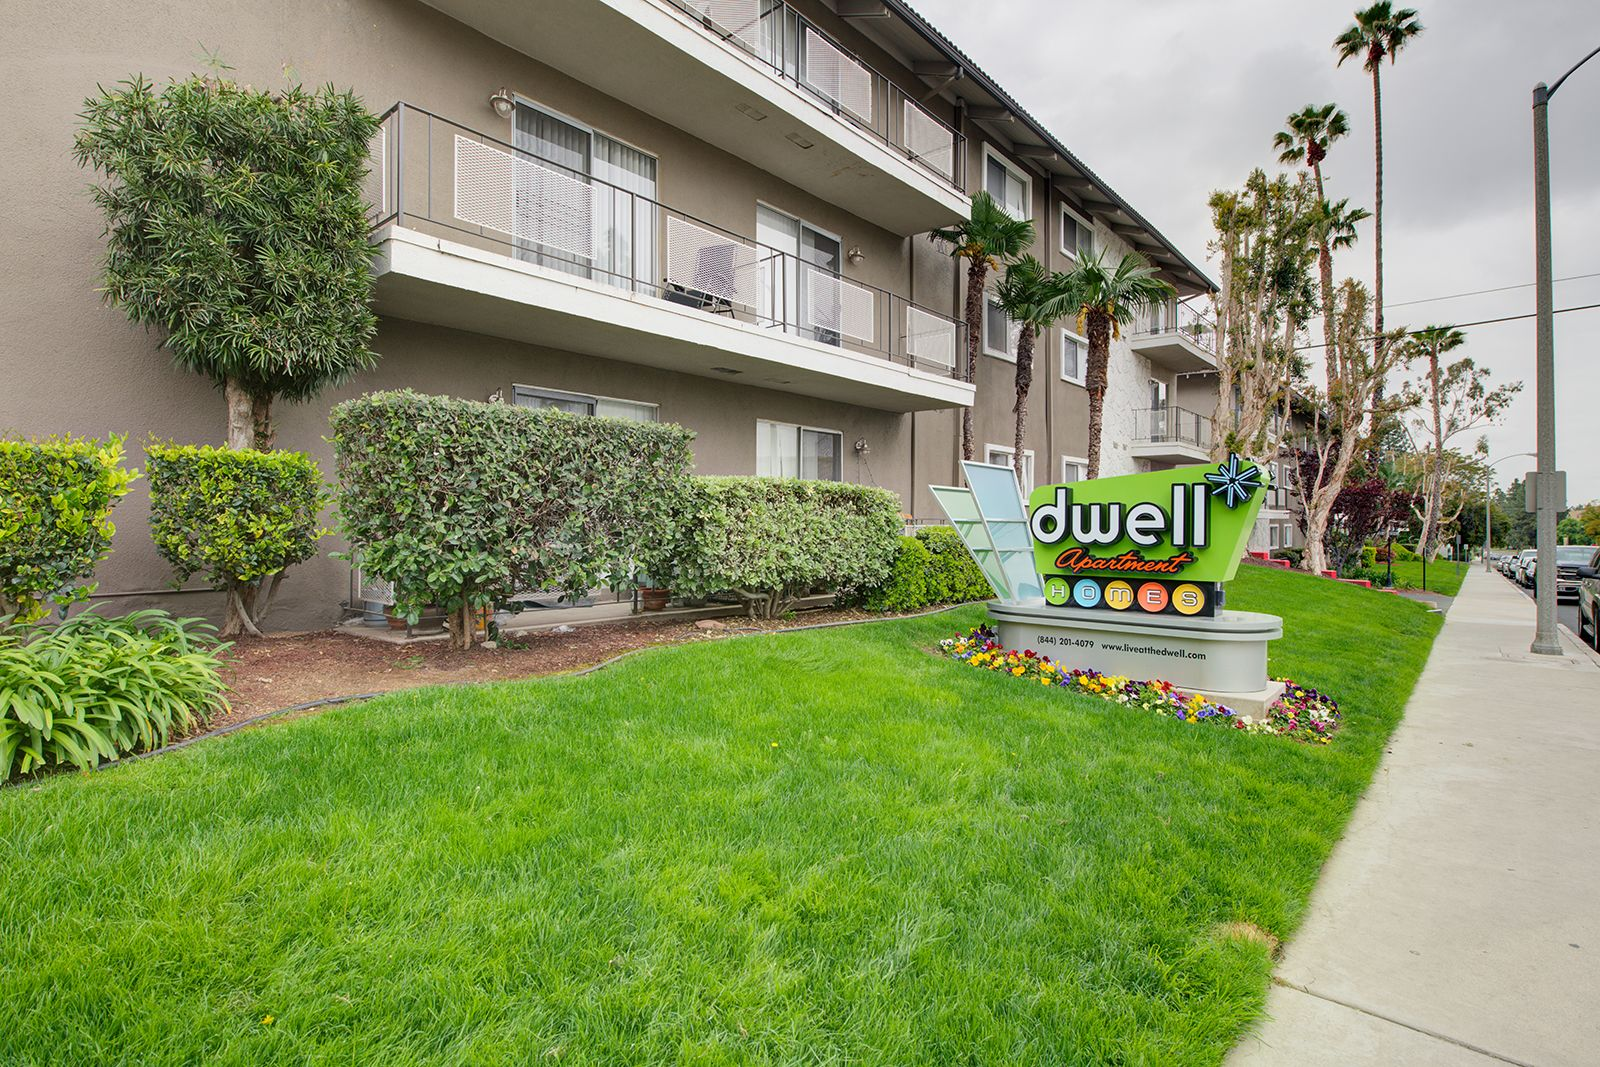 The Community Also Offers Easy Freeway Access To The 60 And 215 Ca Apartments Dwell Nowleasing Dwell Two Bedroom Floor Plan Apartments For Rent